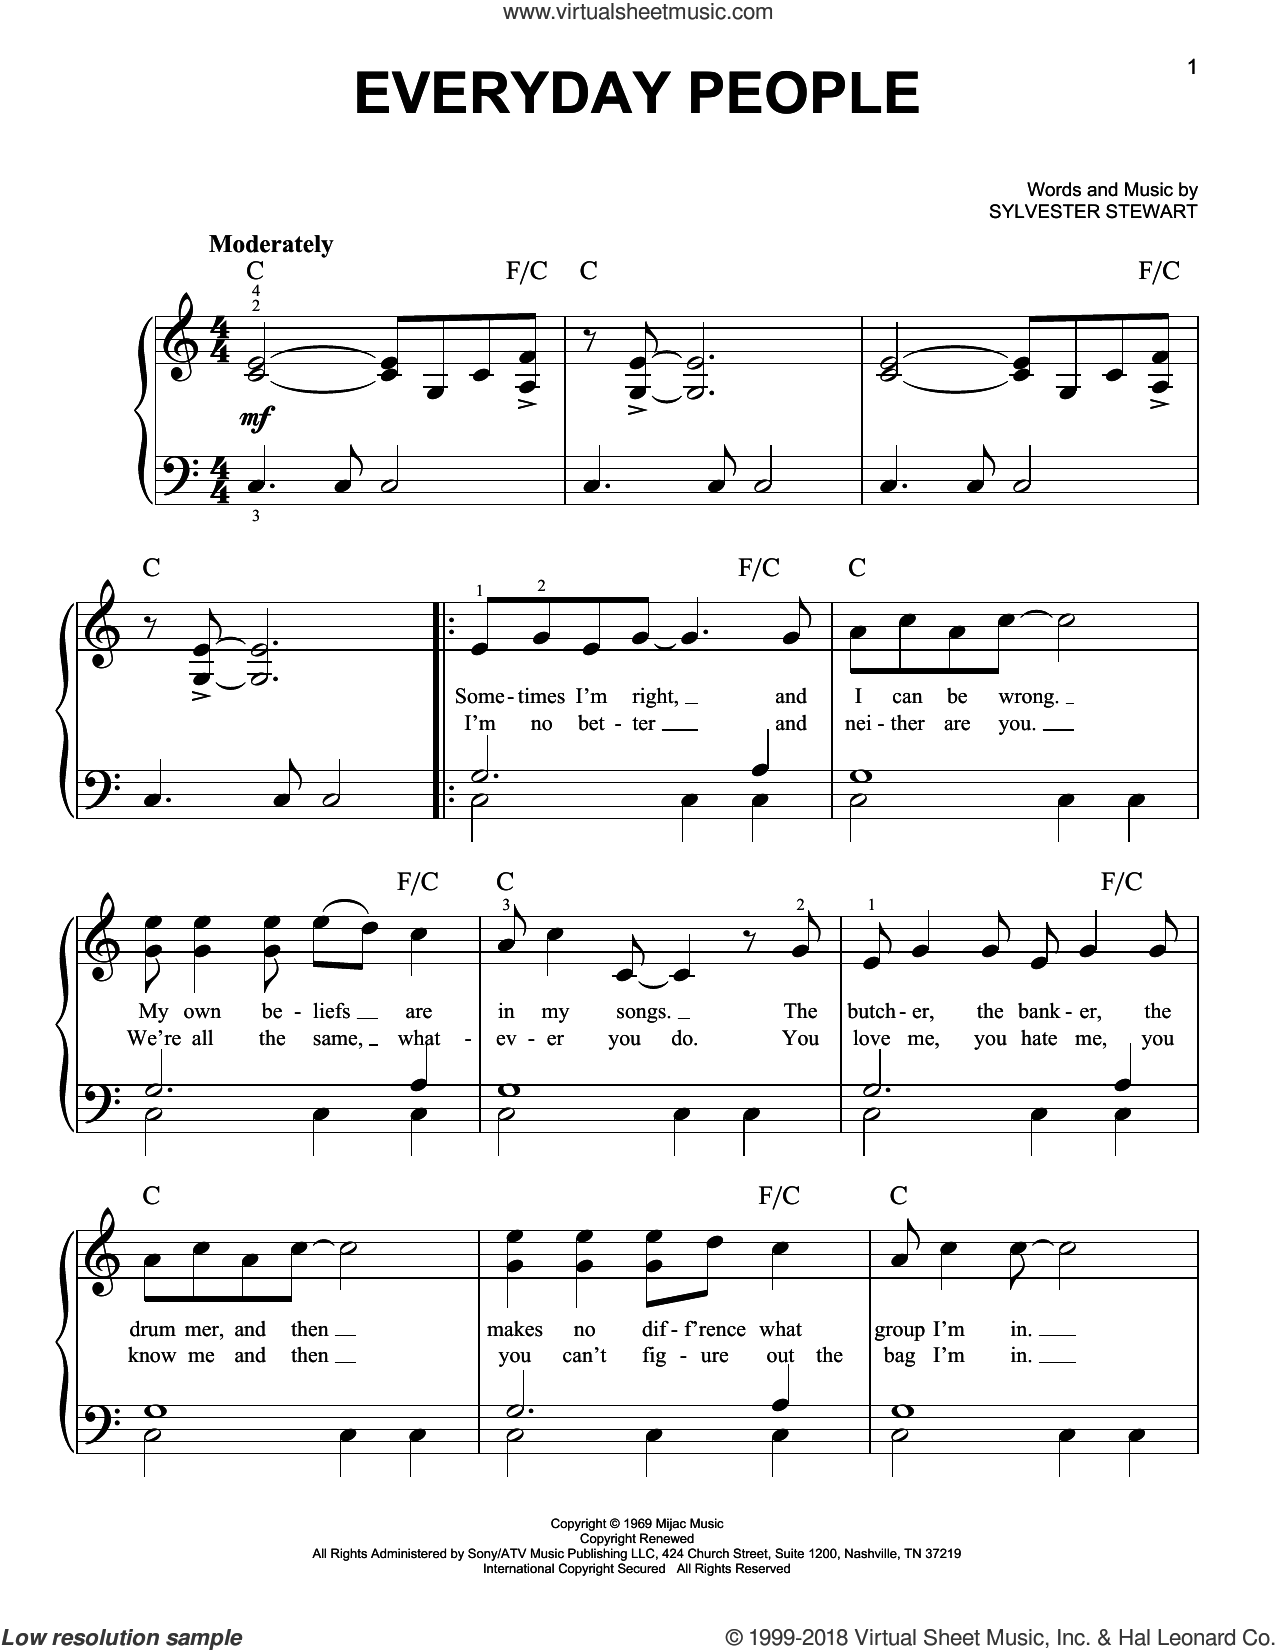 Everyday People sheet music for piano solo by Sly & The Family Stone and Sylvester Stewart, beginner